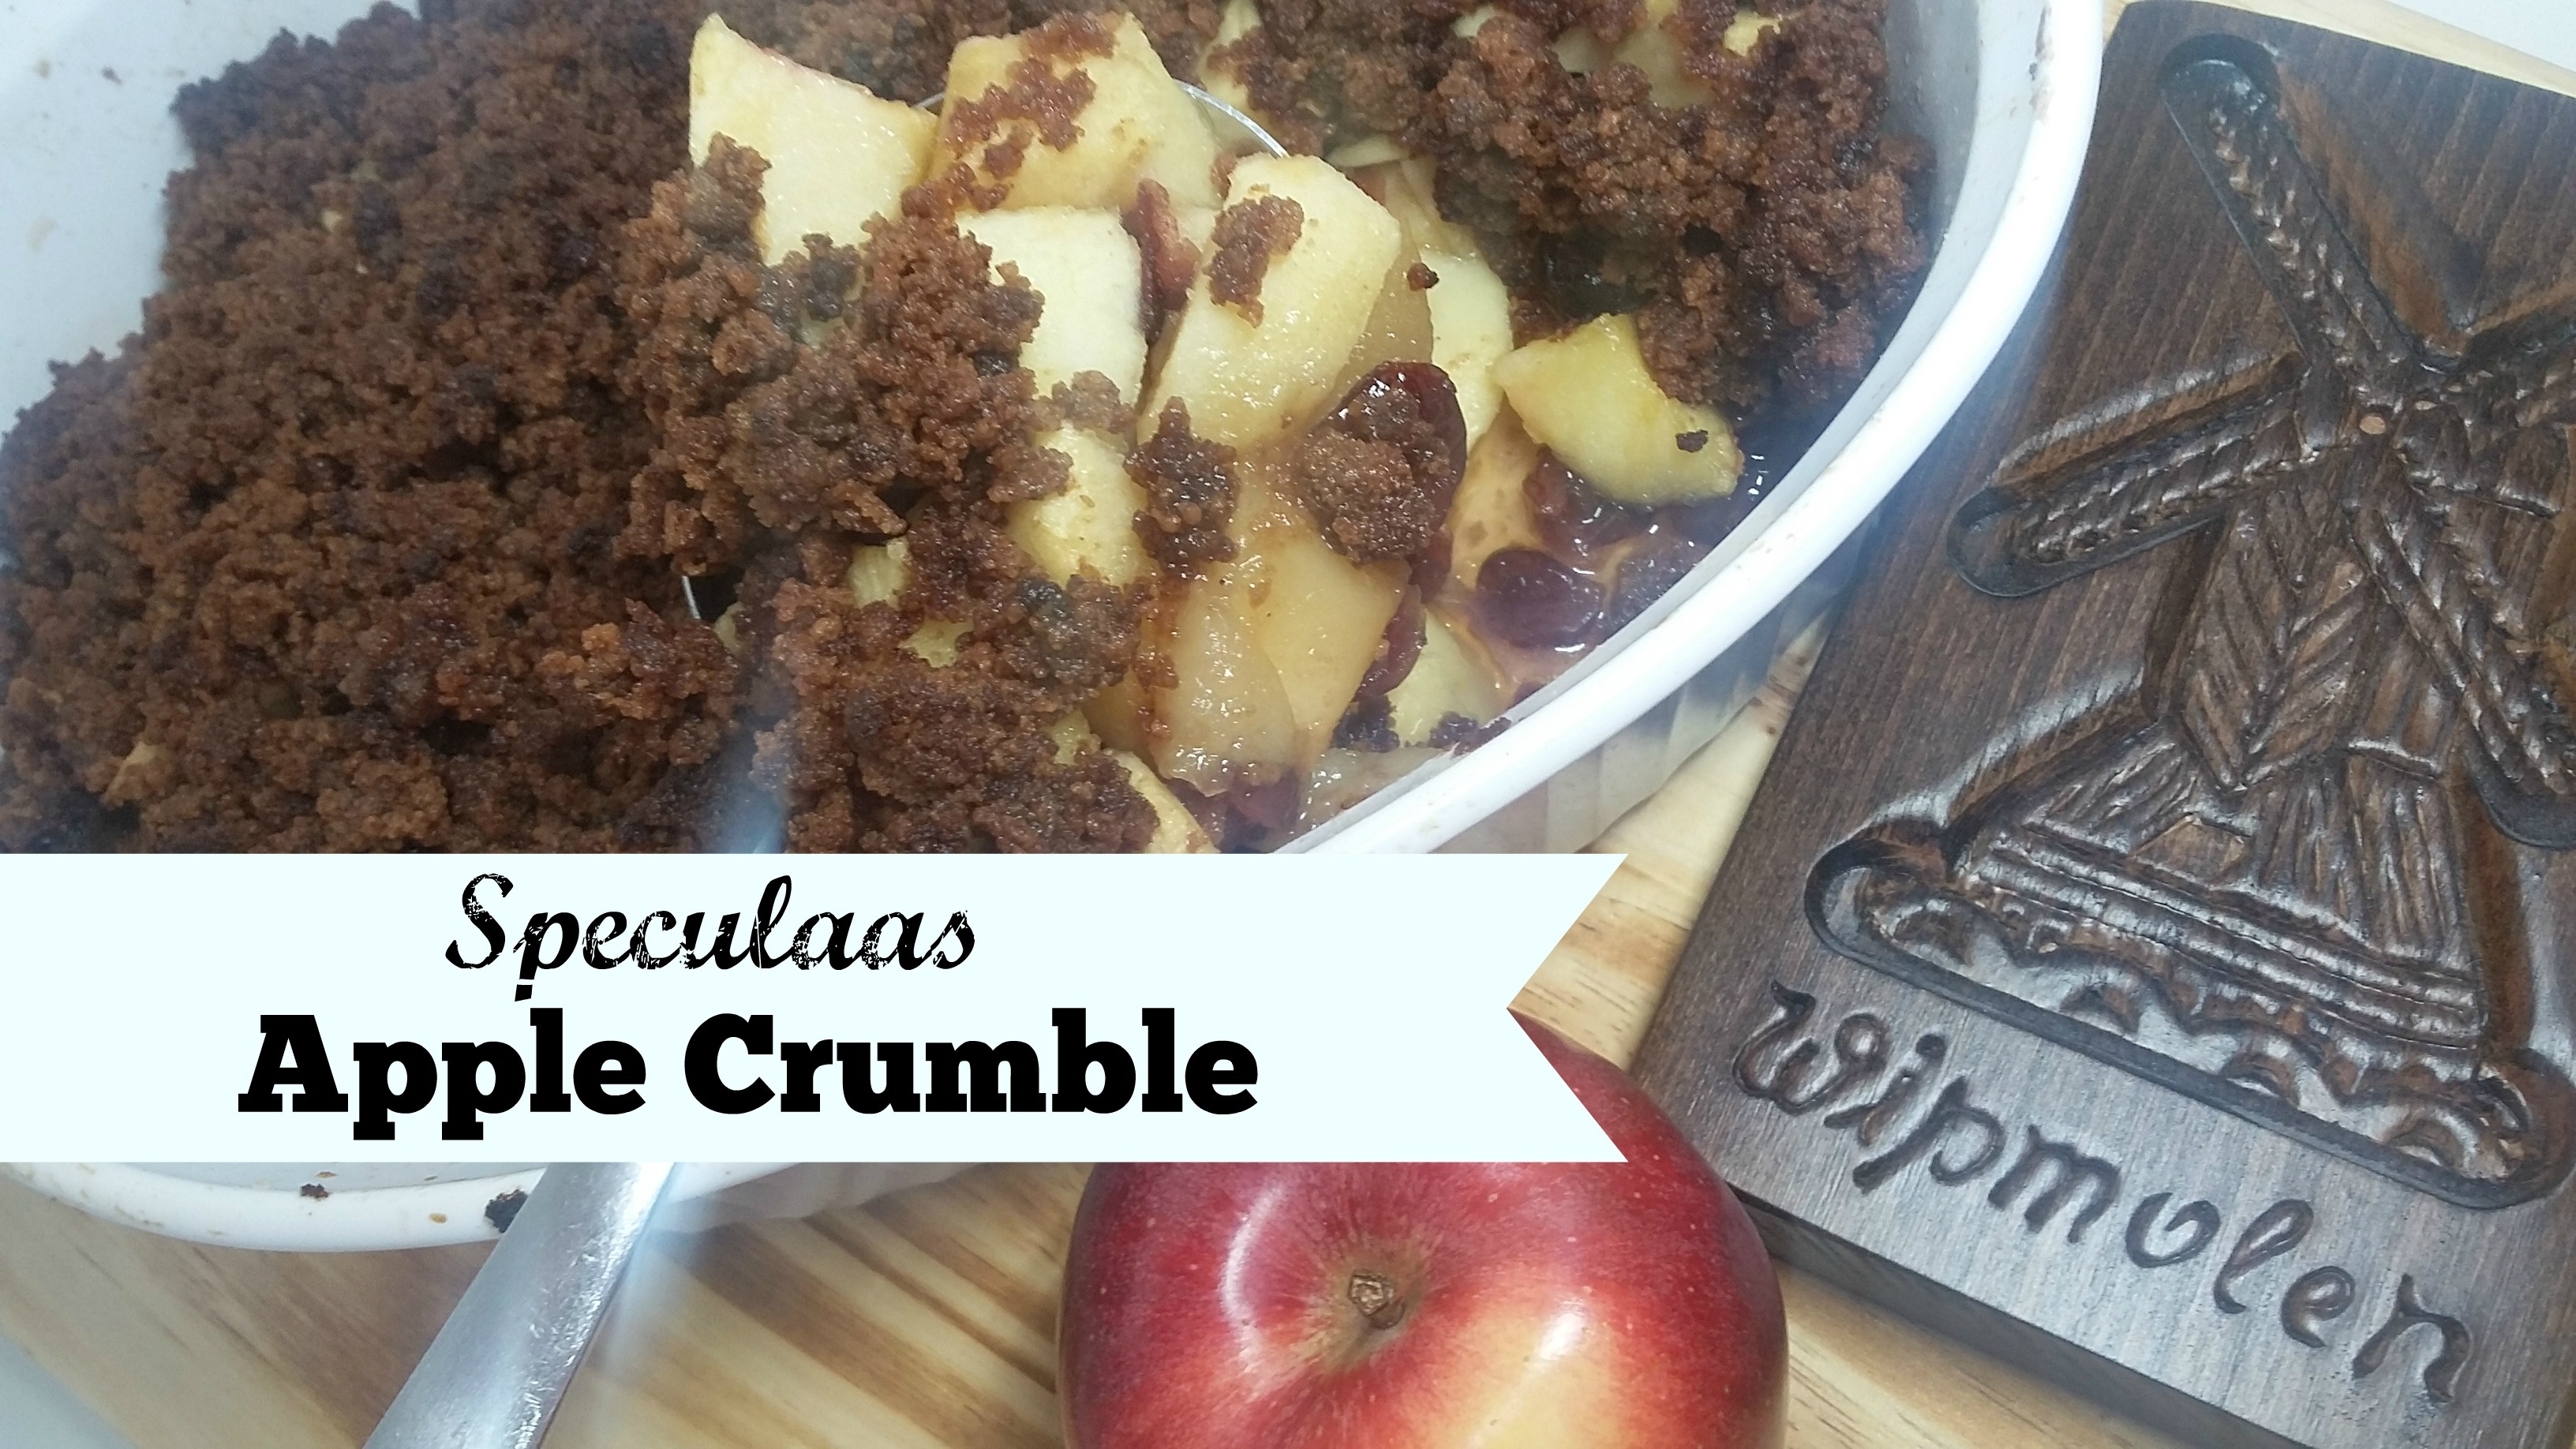 speculaas-apple-crumble-with-banner